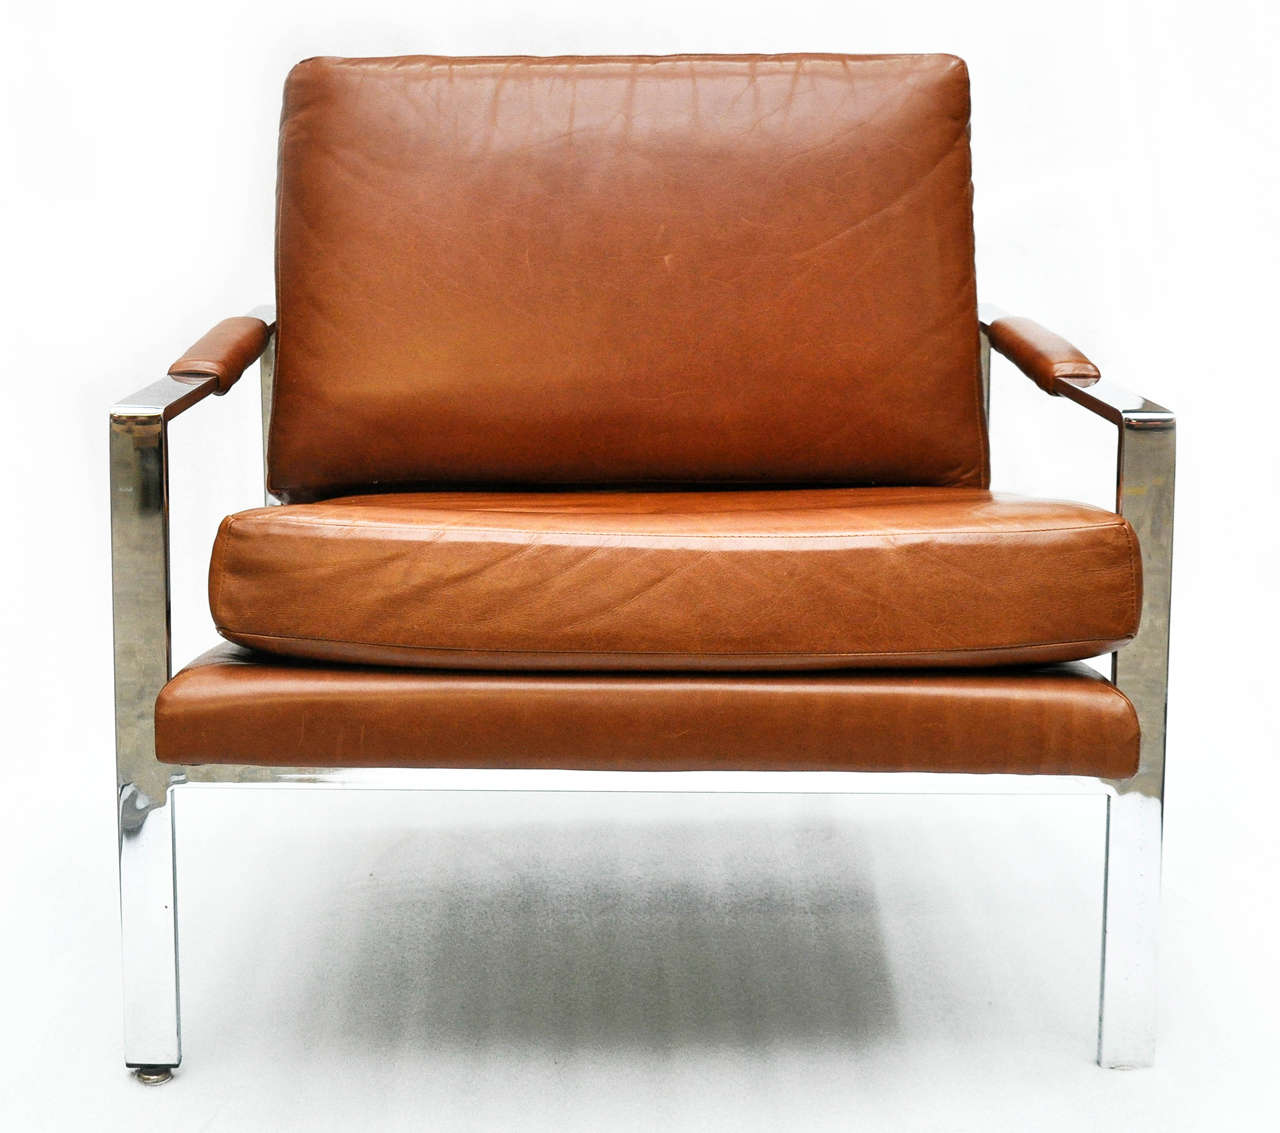 Fantastic Milo Baughman Leather and Chrome Chair at 1stdibs BS19